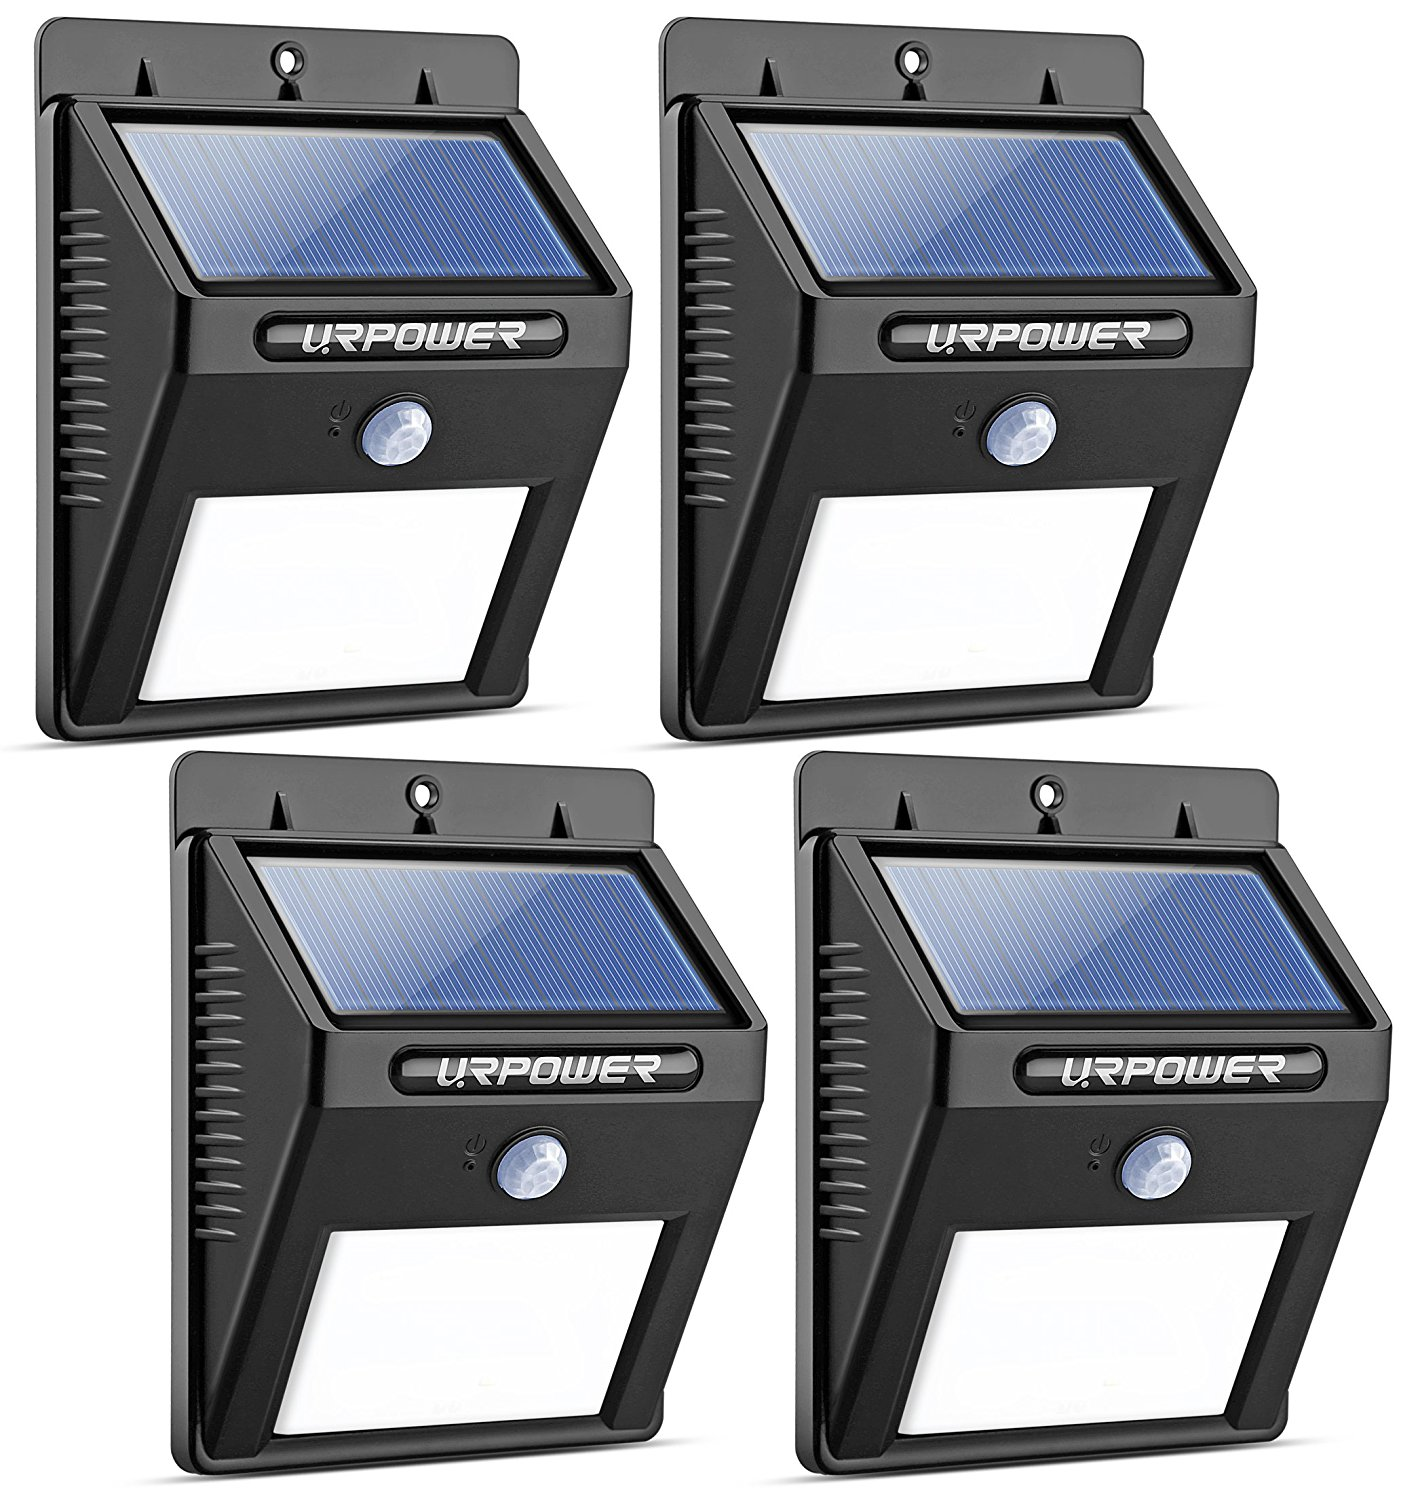 solar panel outdoor lights exterior urpower solar powered outdoor lights best solar outdoor lights ledwatcher